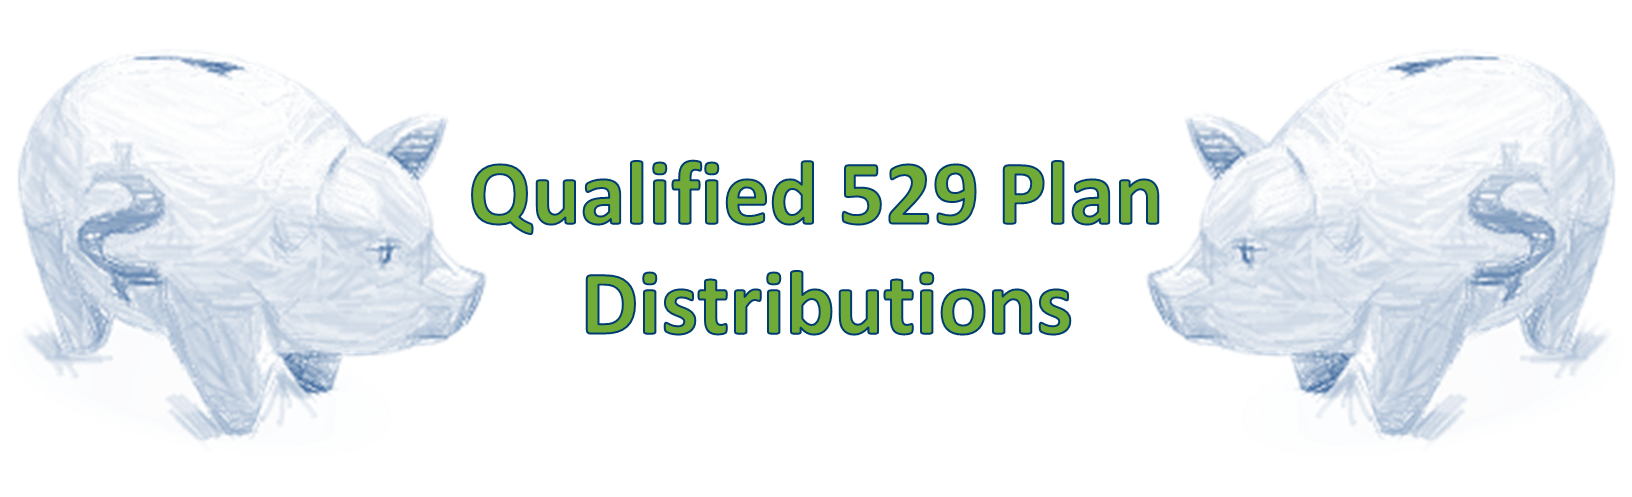 529 Plan Distributions